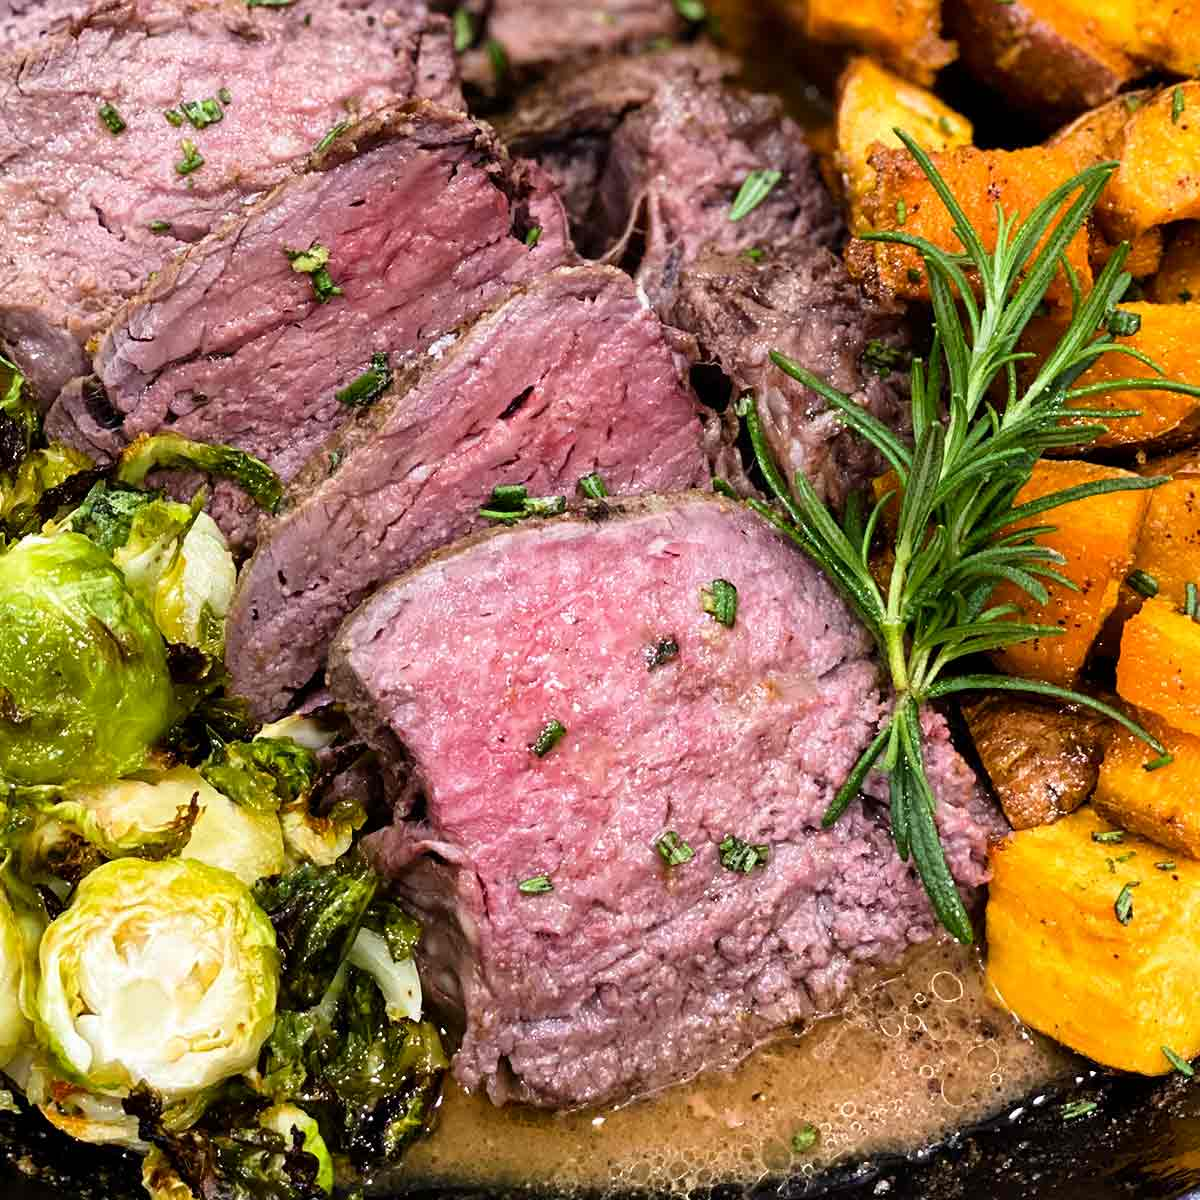 Sous vide tenderloin sliced in a skillet with sweet potatoes, garlic butter, and brussels sprouts